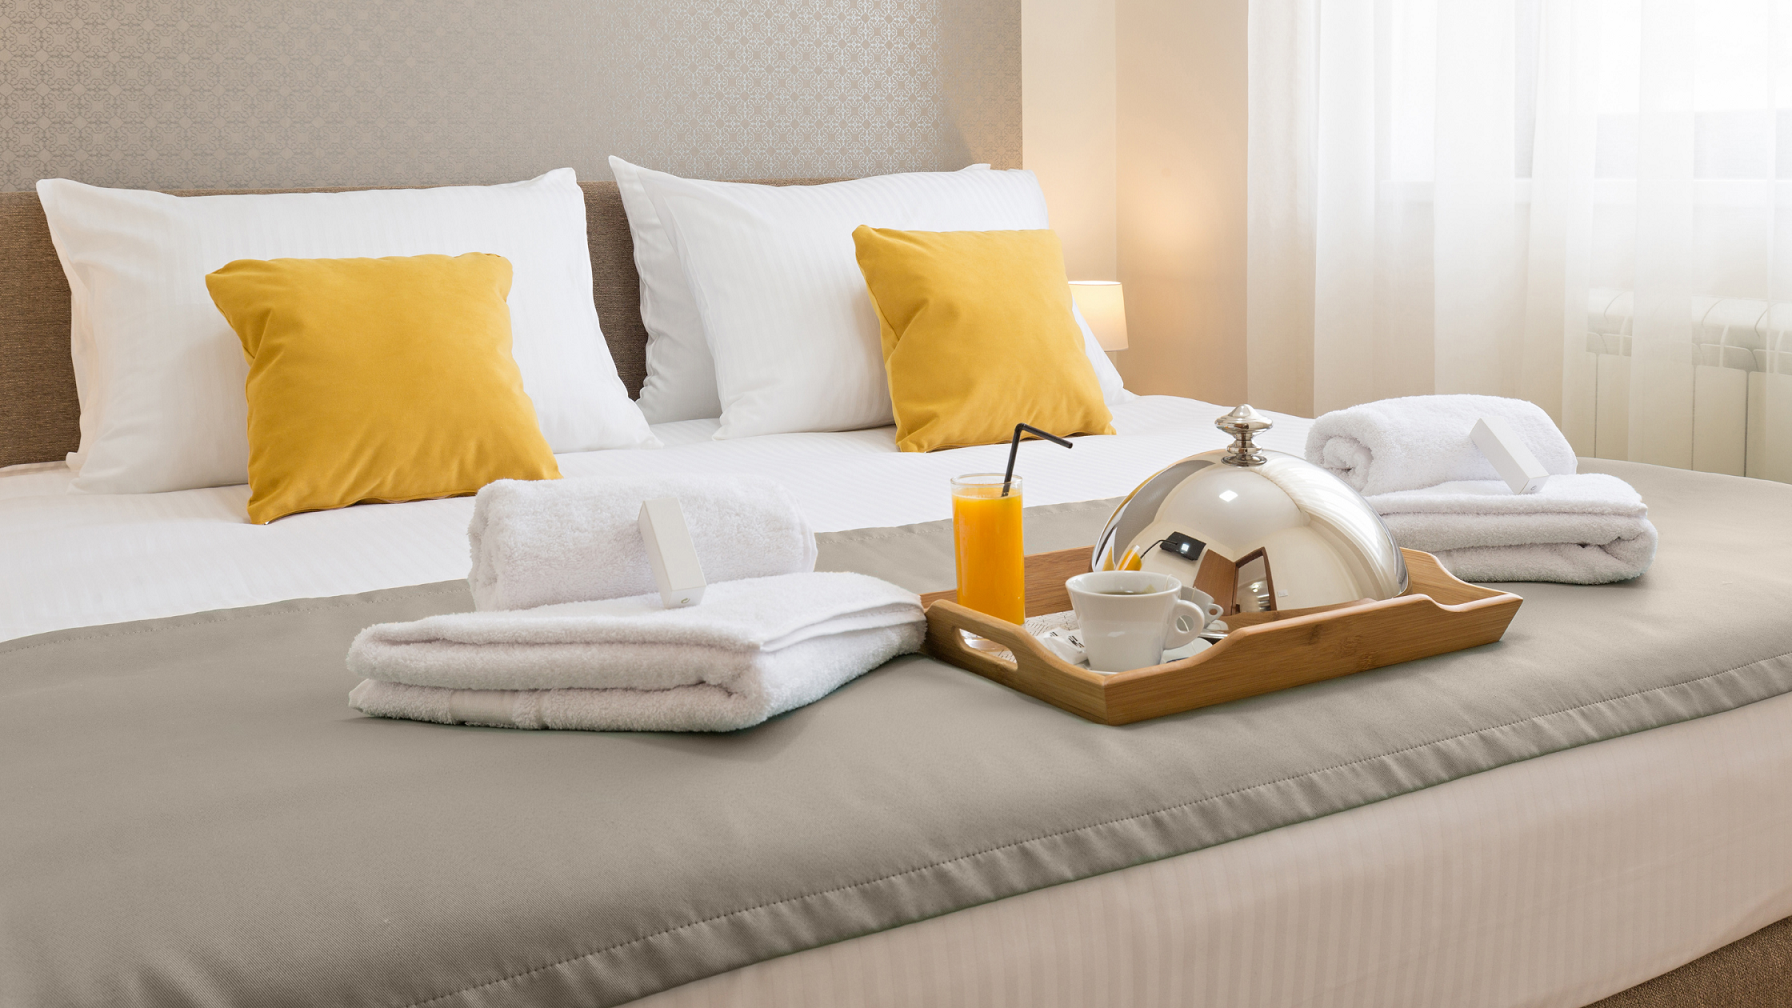 Hospitality: Marketing Strategies To Help Your Brand Bounce Back